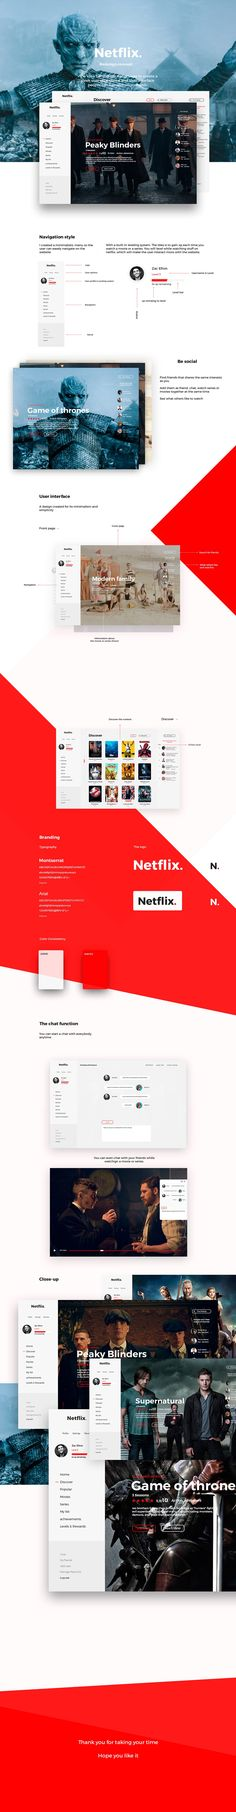 Redesign concepts for popular websites #5 – Muzli -Design Inspiration